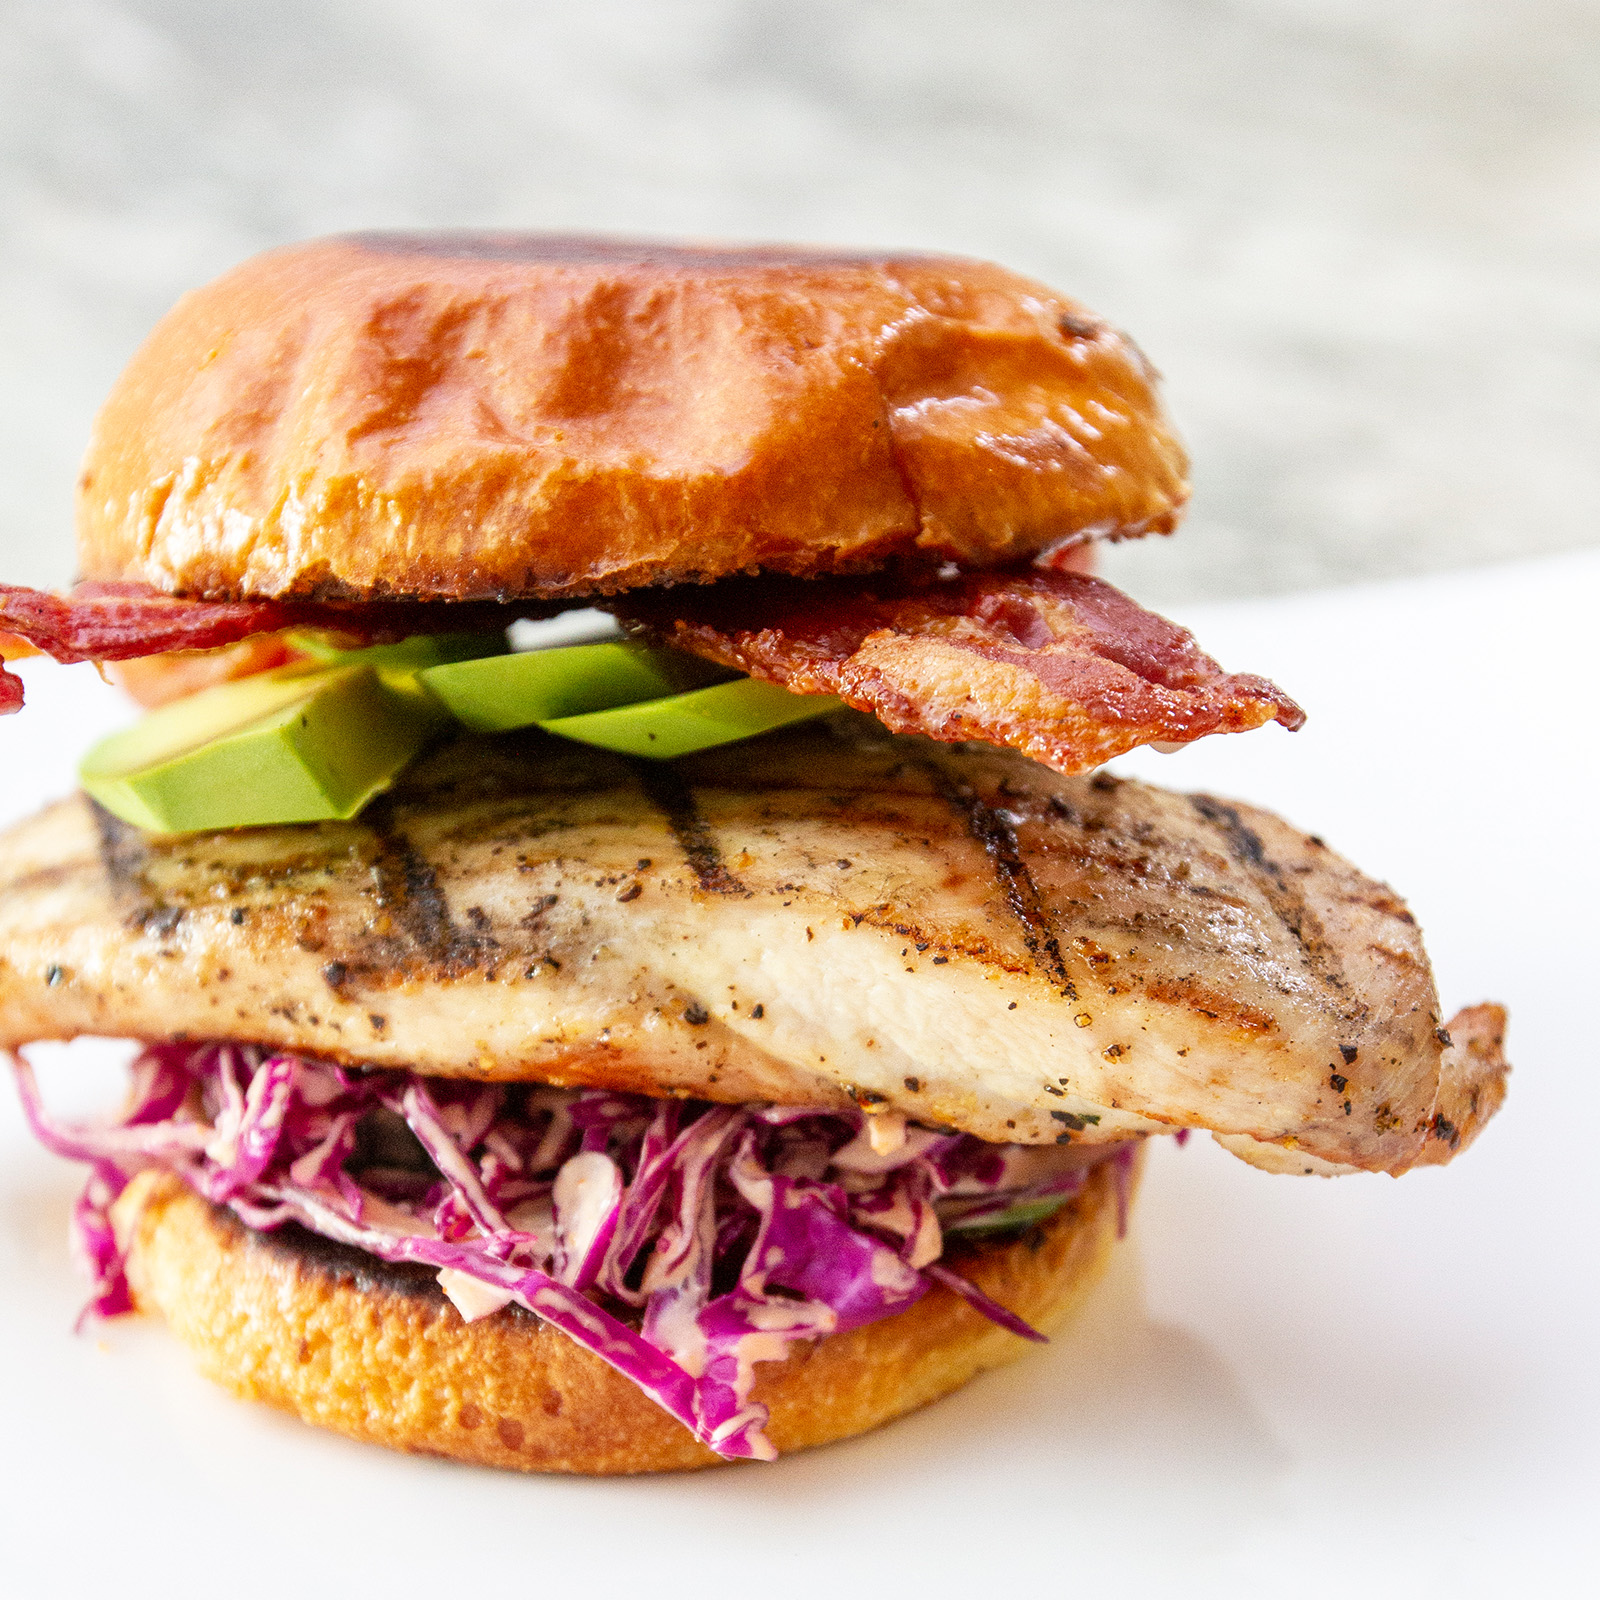 Grilled Chicken Breast Sandwich With Spicy Slaw